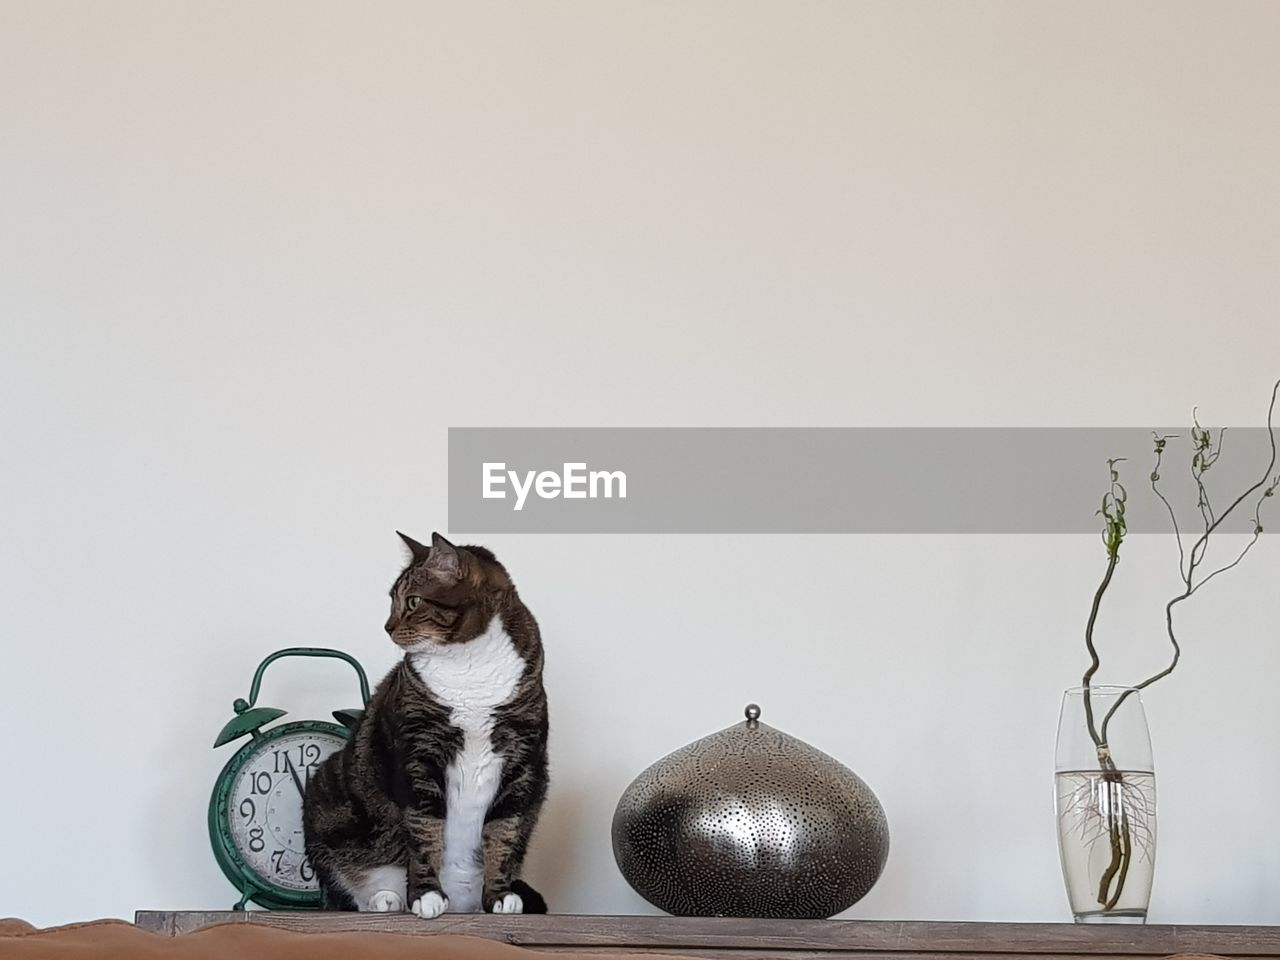 Cat on table by alarm clock and decoration against white wall